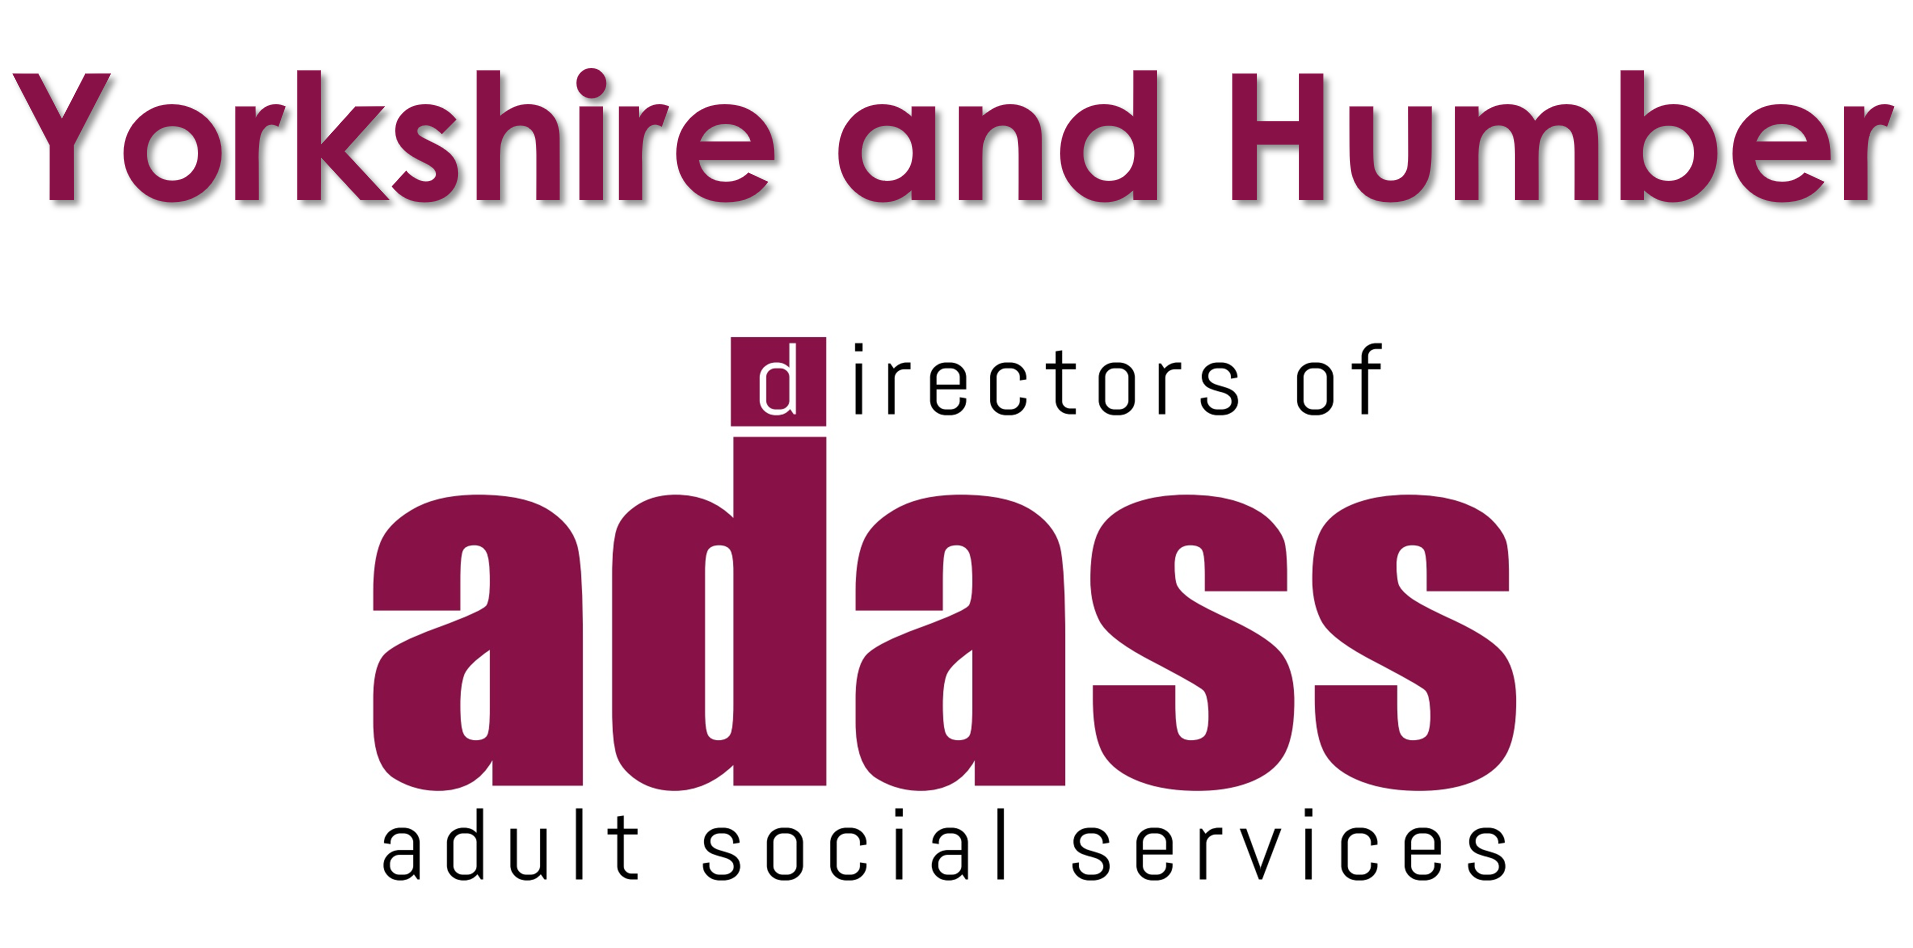 Association of Directors of Adult Social Services Yorkshire and Humber Region